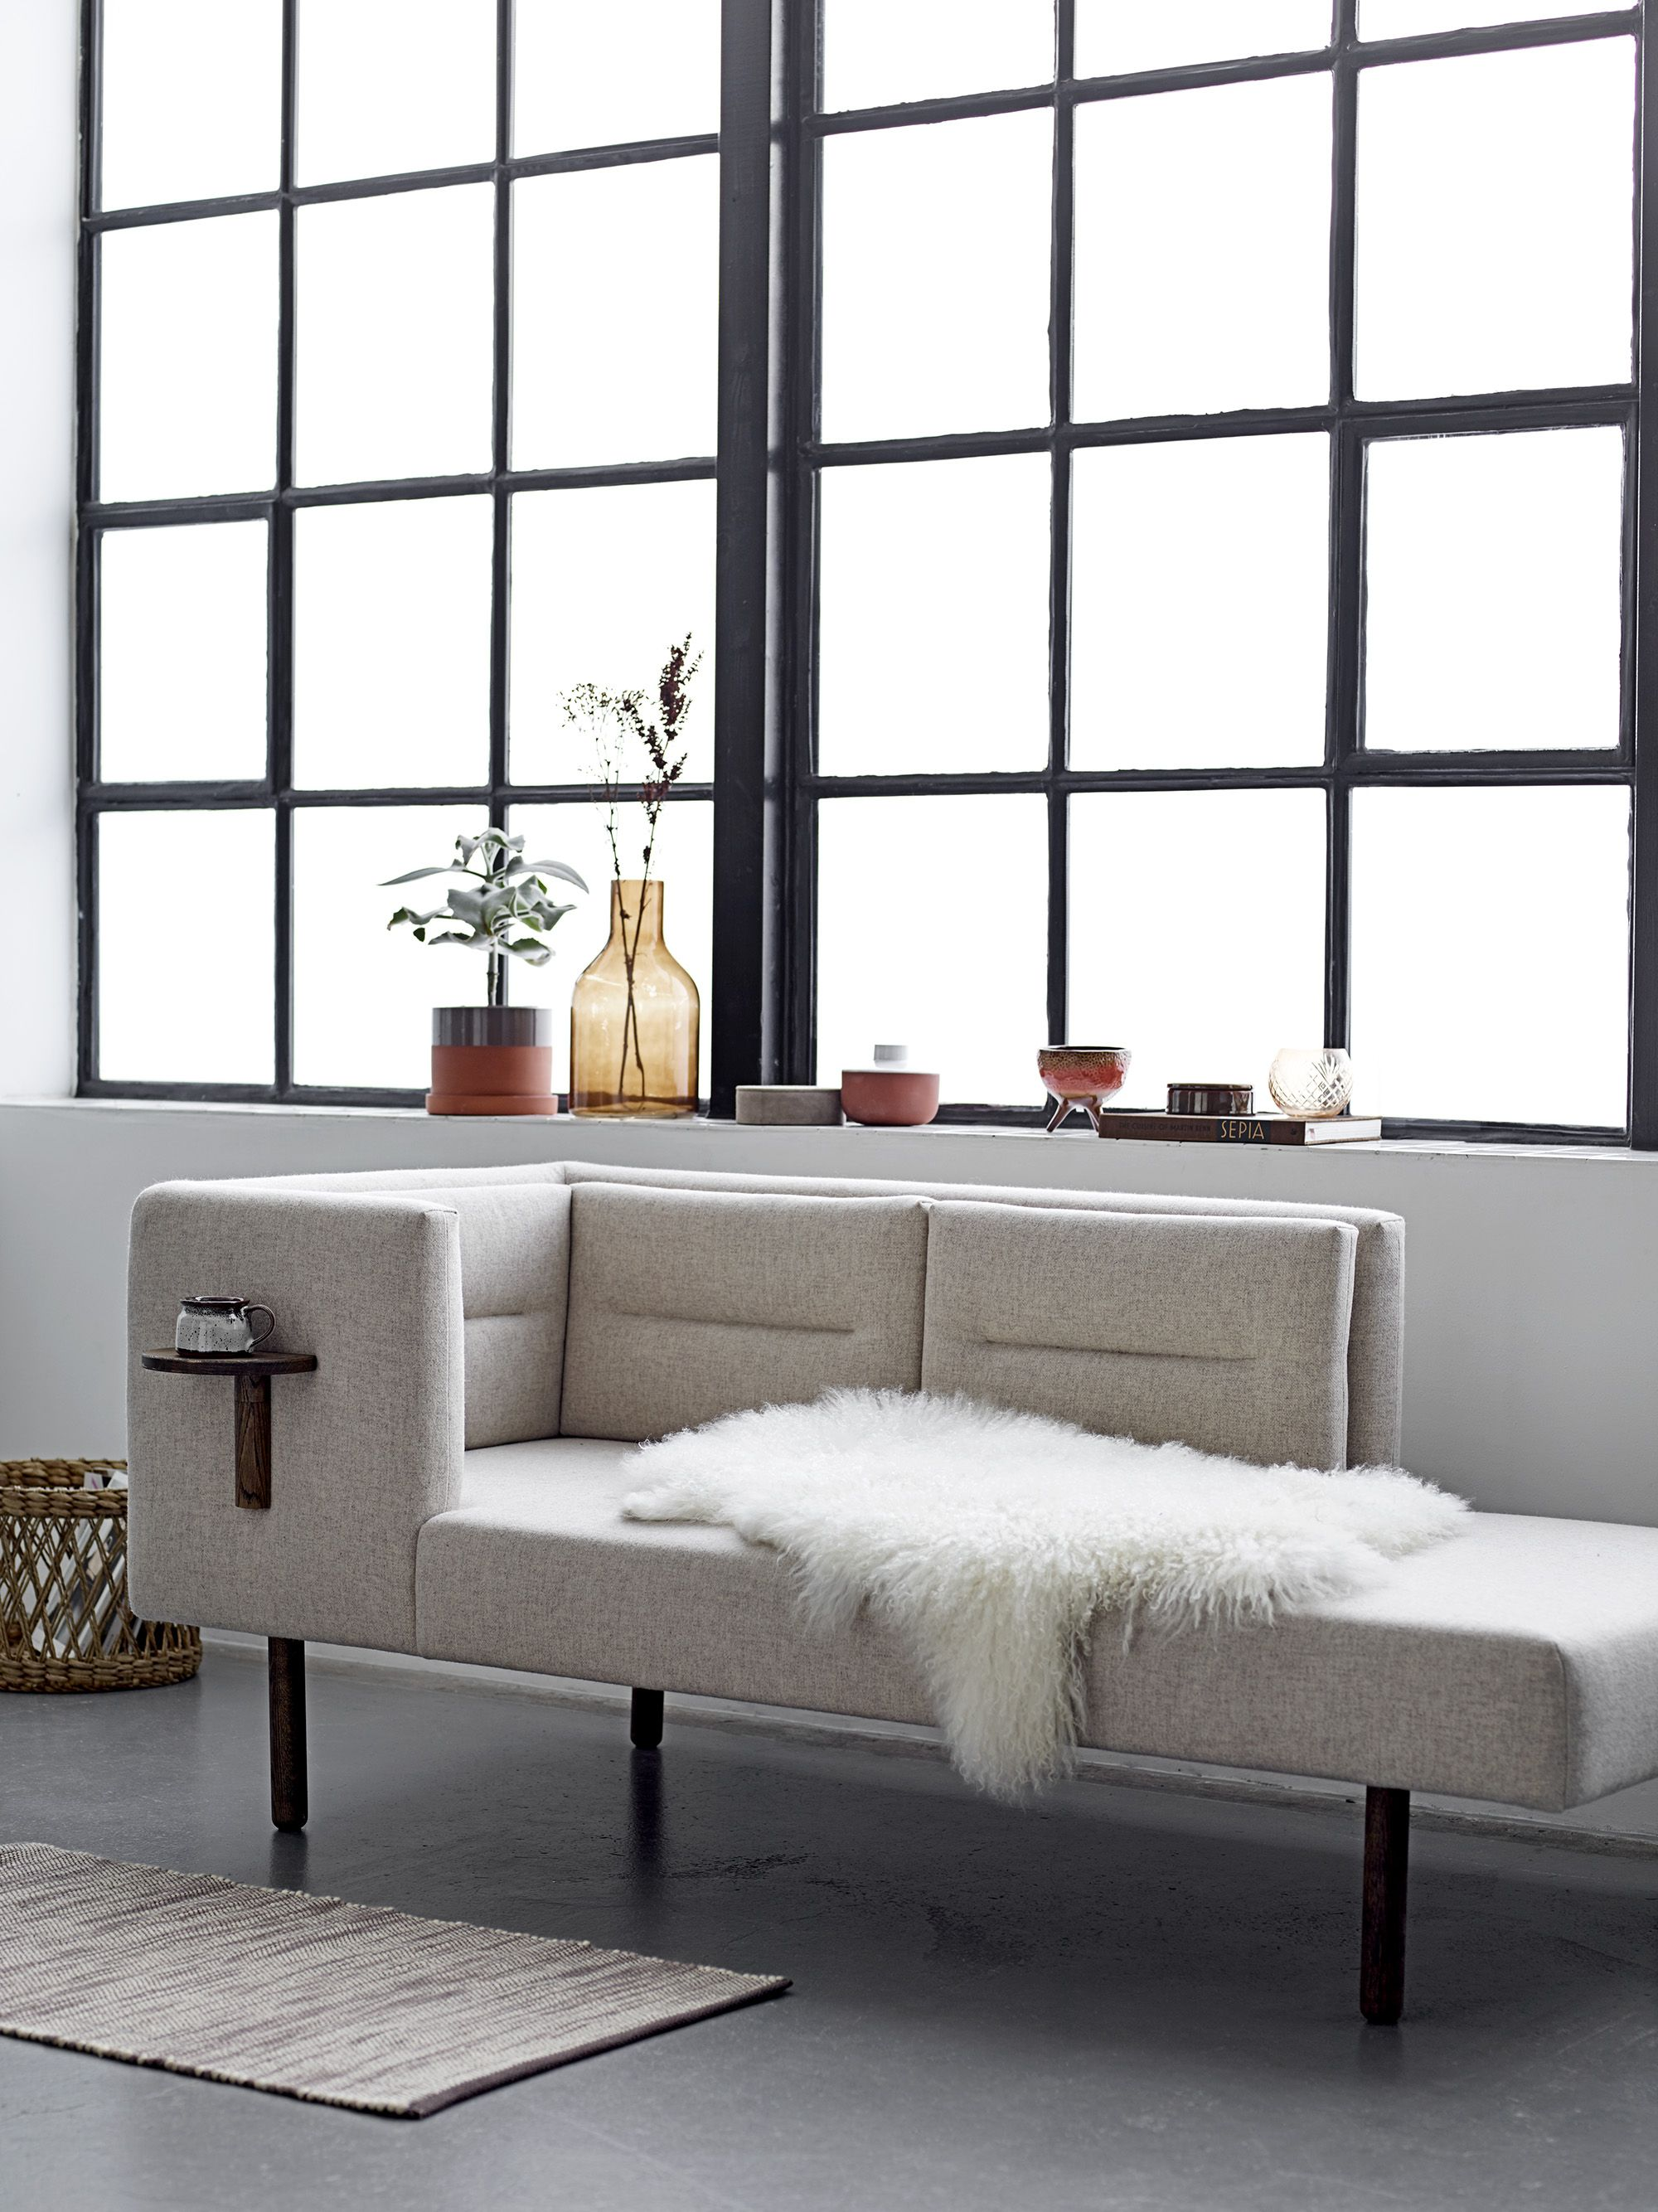 A Daybed Is An Easy Way To Update And Add Instant Glamour And  # Meuble Tv Hi Fi Style Bord De Mer